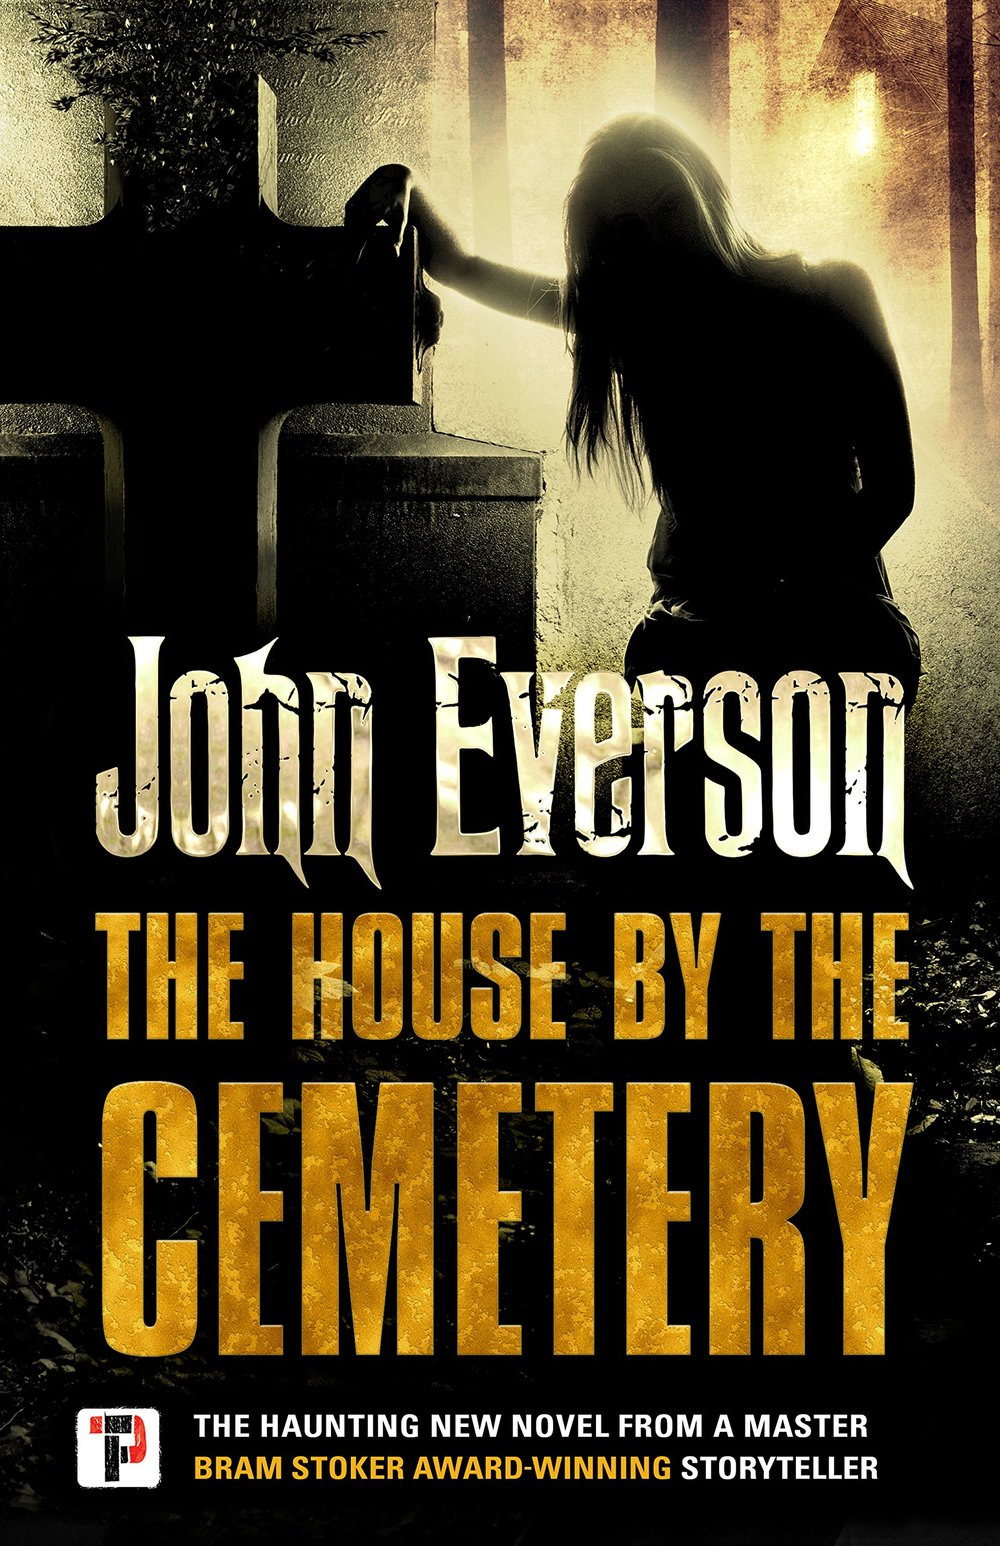 The House By The Cemetery_John Everson.jpg